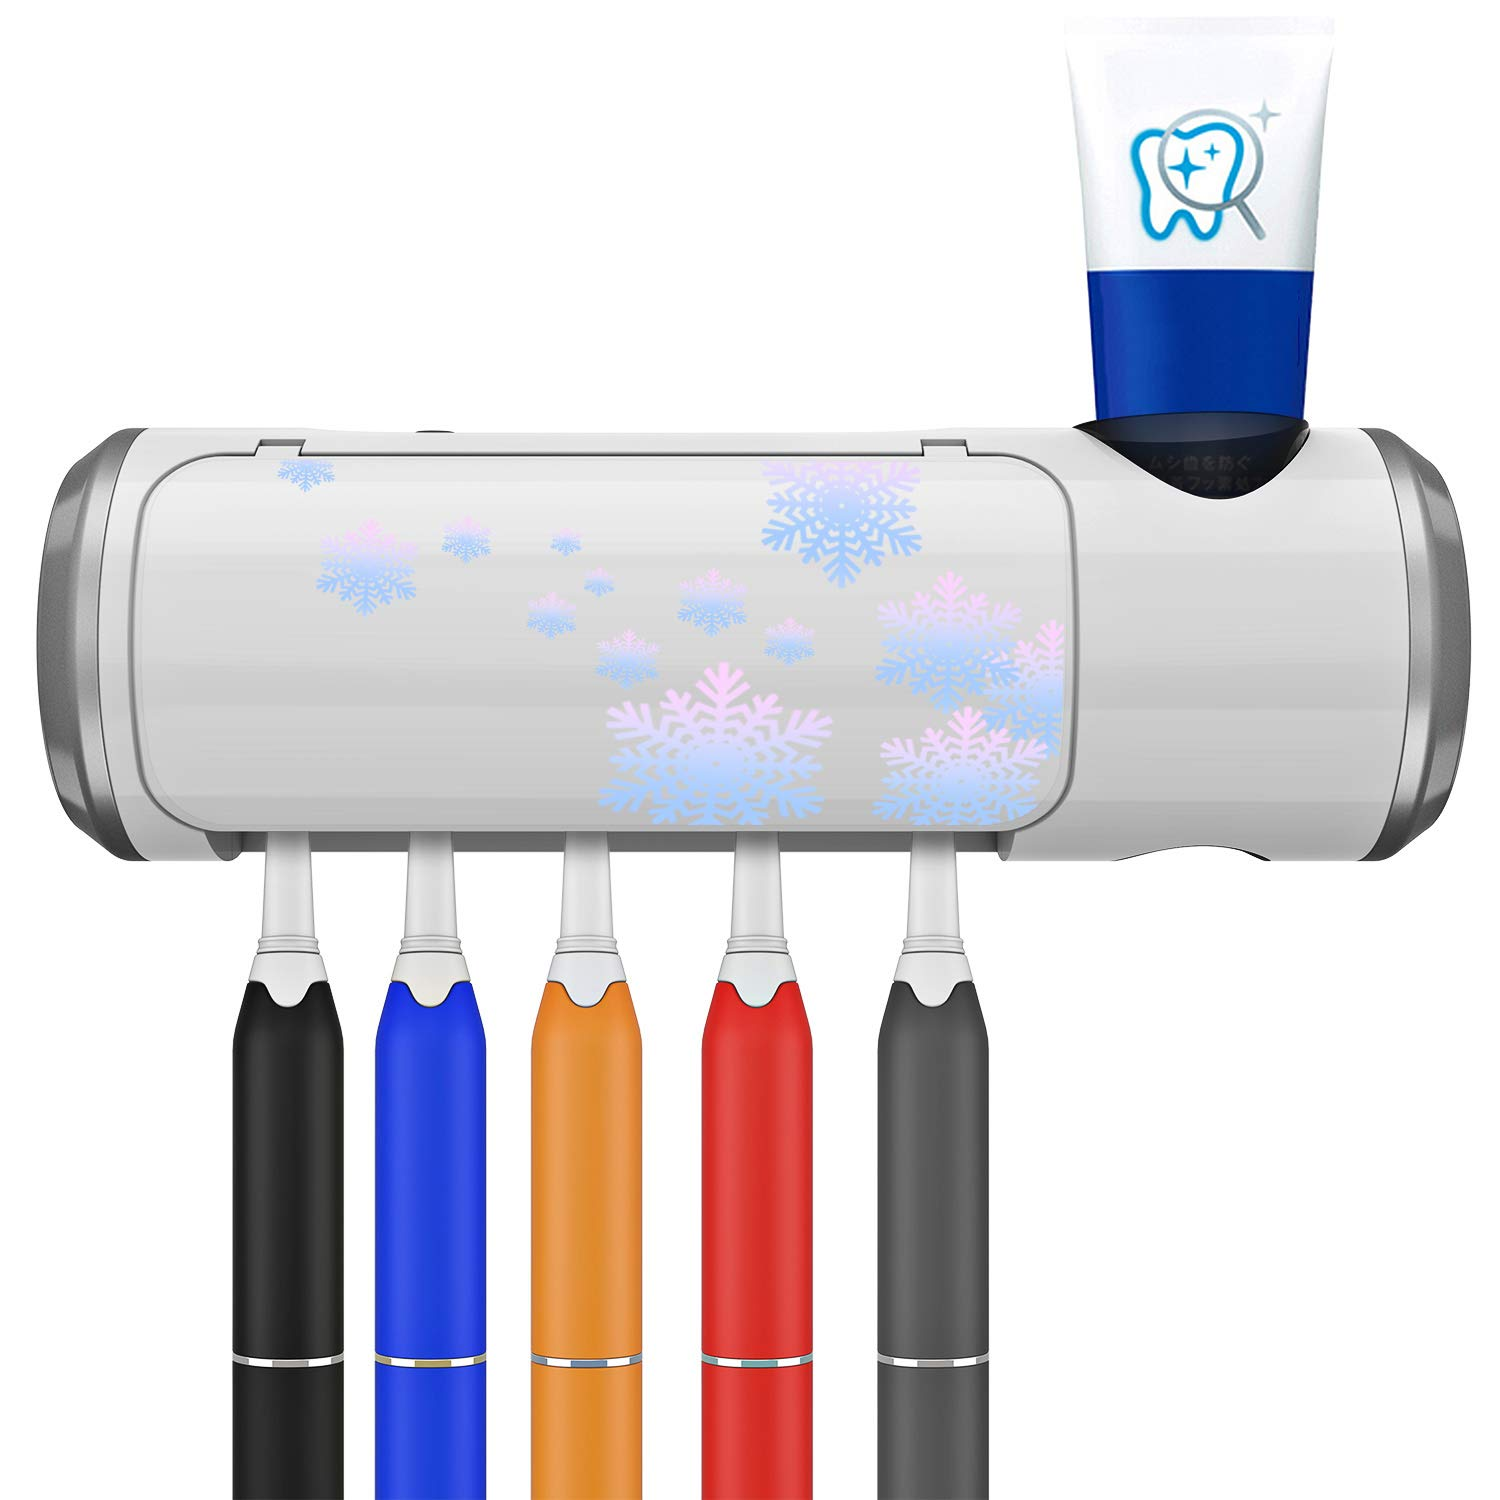 KALDOREI UV Toothbrush Sterilizer Holder, Wall Mounted Automatic Toothpaste Dispenser with 5 Toothbrush Holder and Drying Function